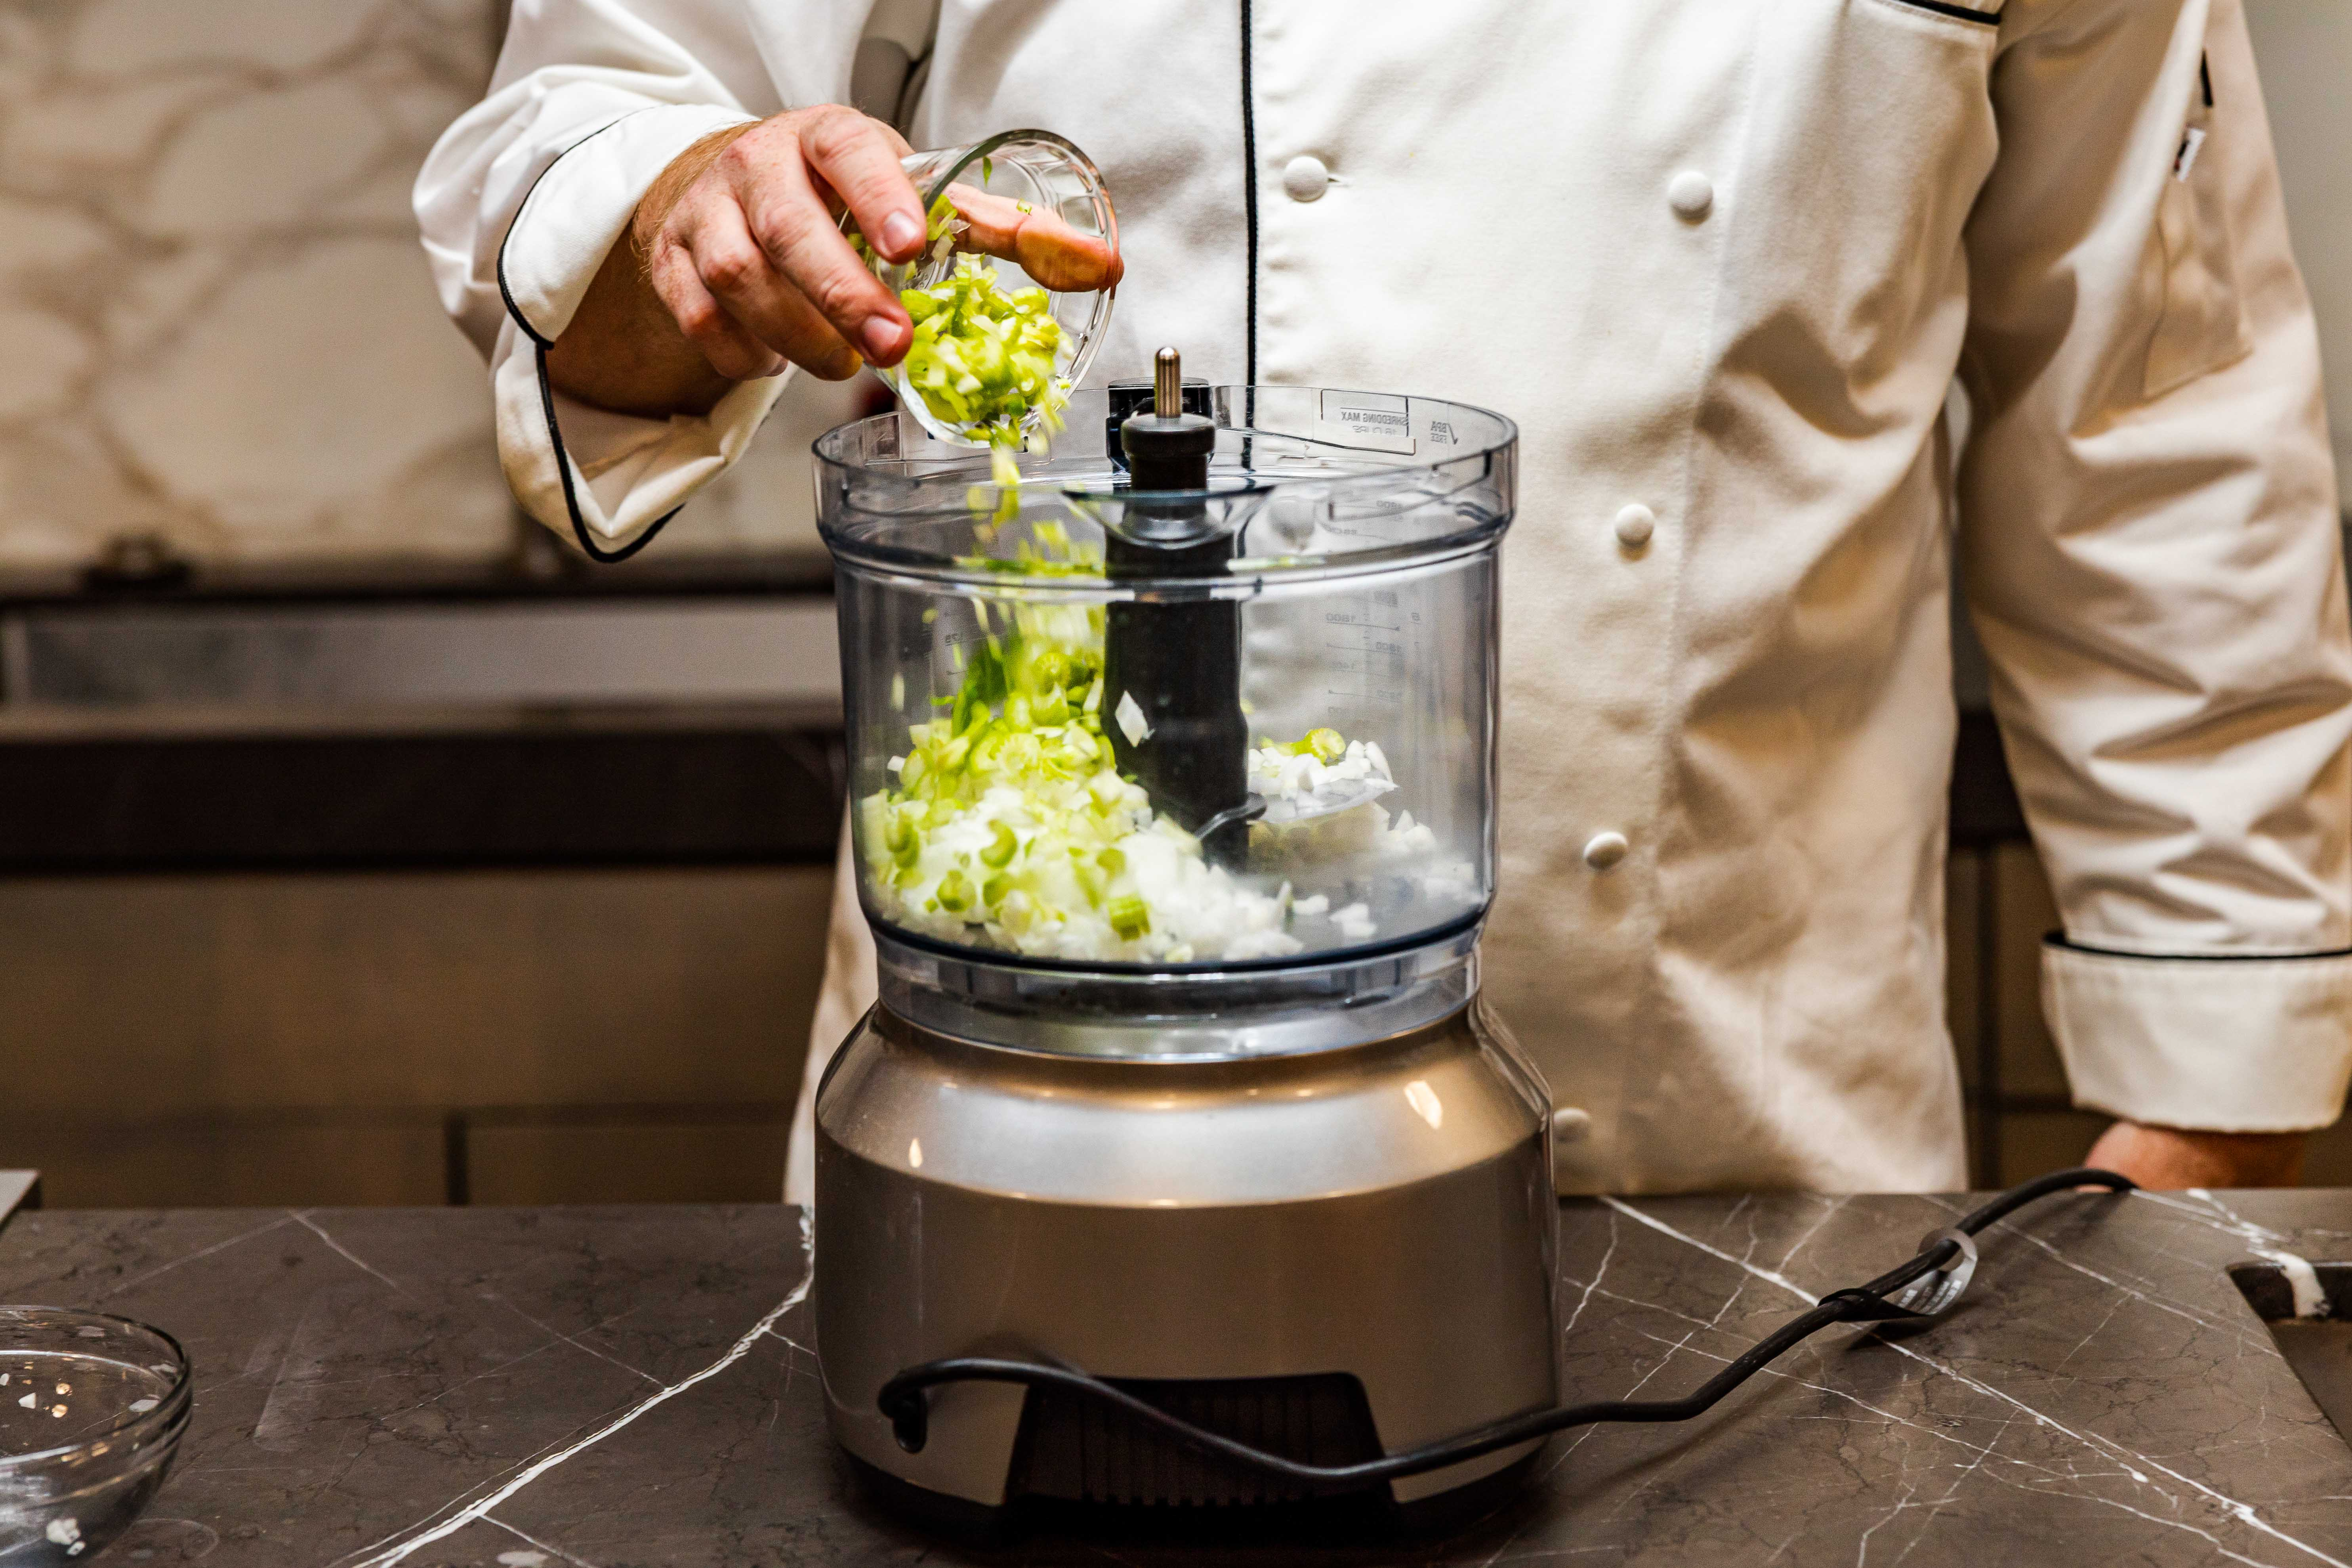 Finely chopping celery and onion in a food processor